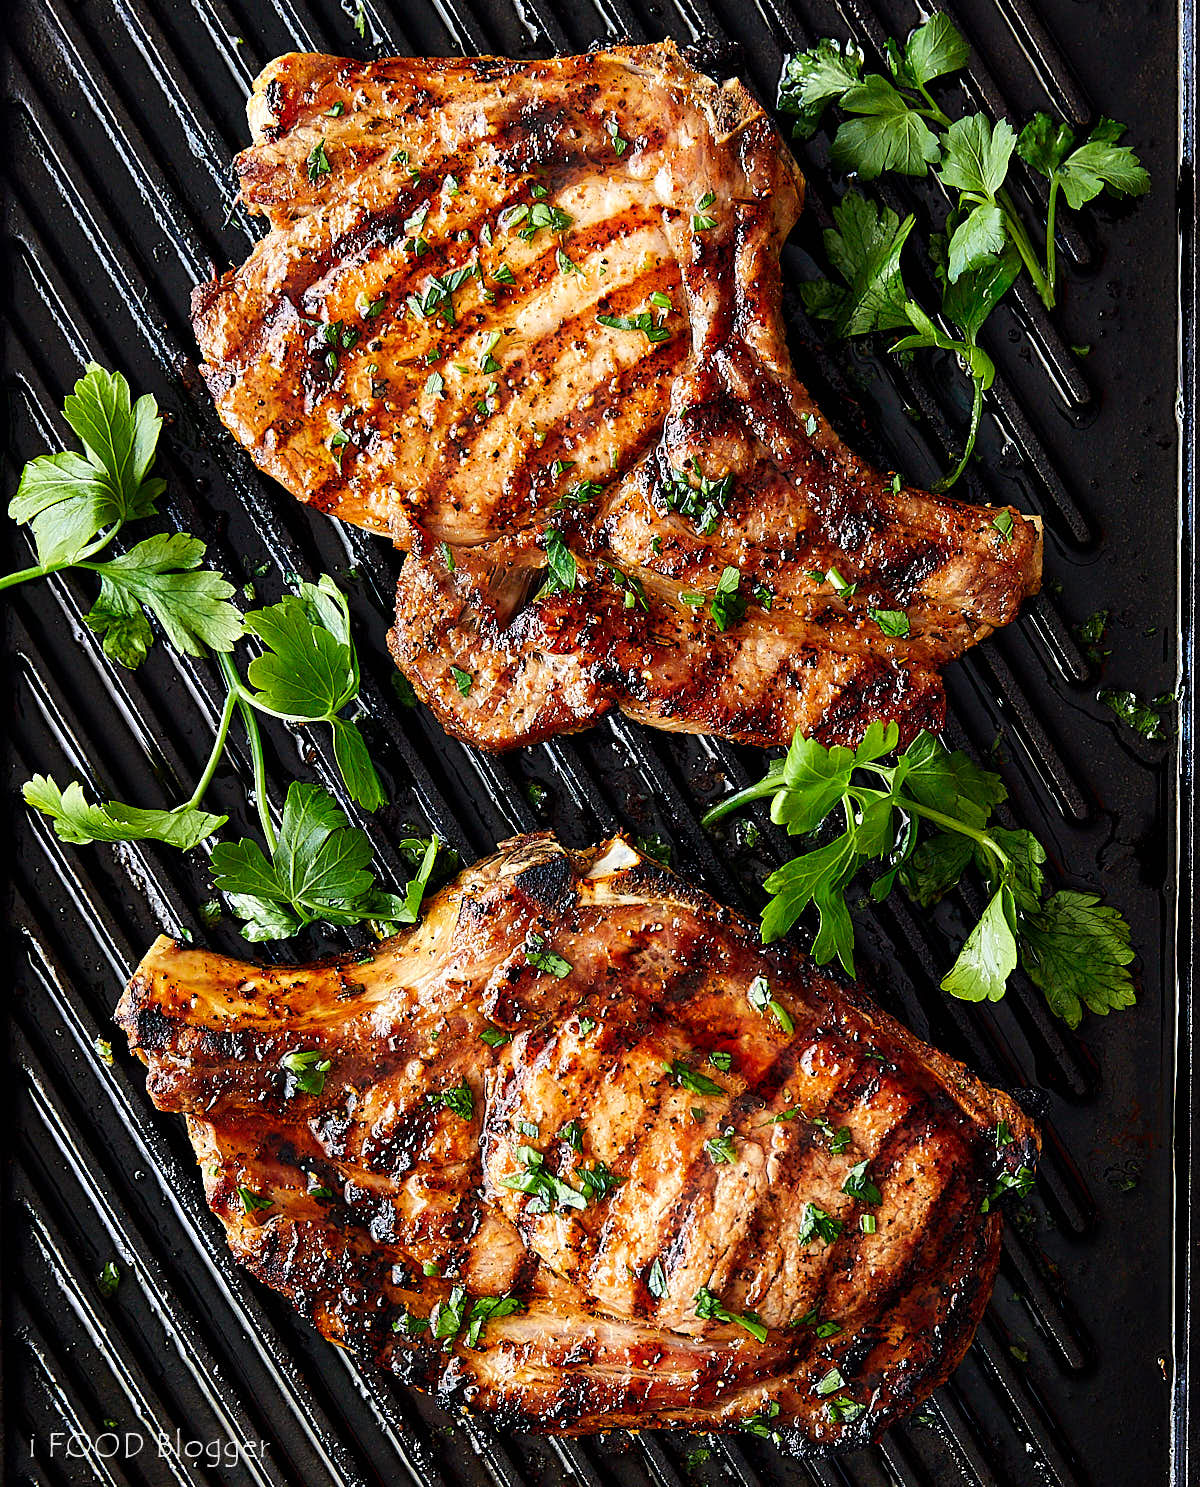 Broiled Pork Chops (with Creole Seasoning)